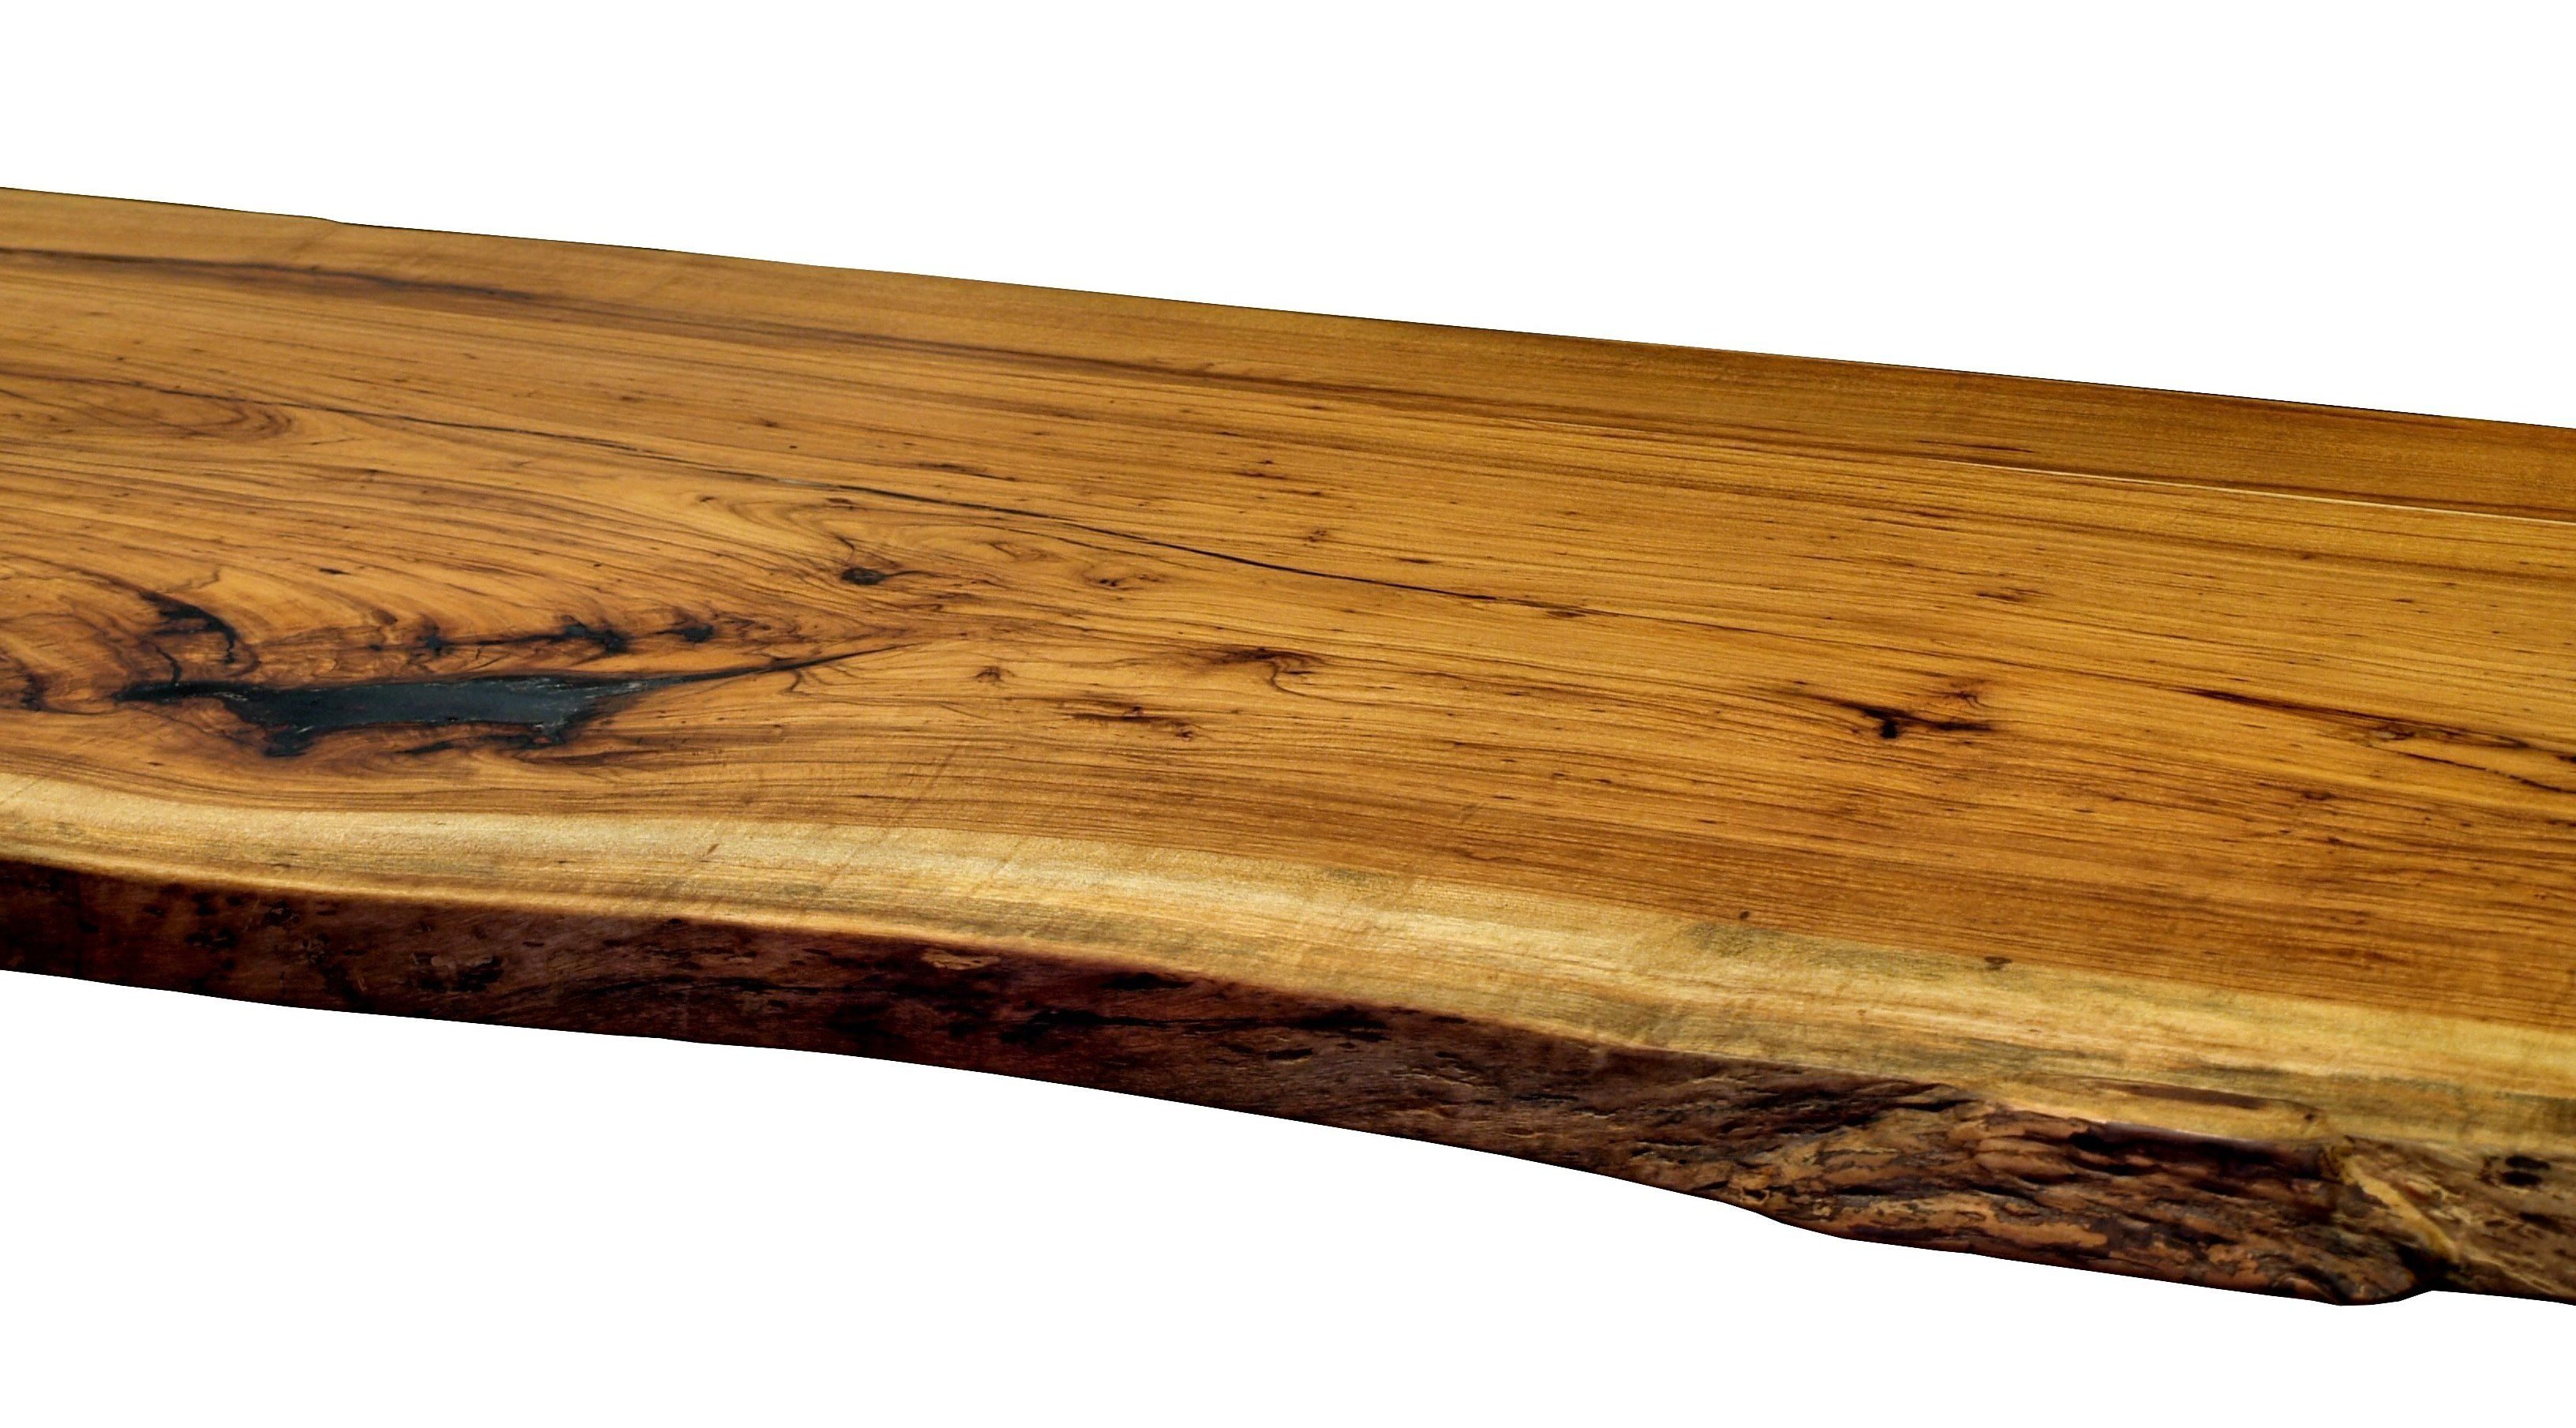 Pecan Slab Table Top With Natural Edges And A Tung Oil/Citrus Finish.